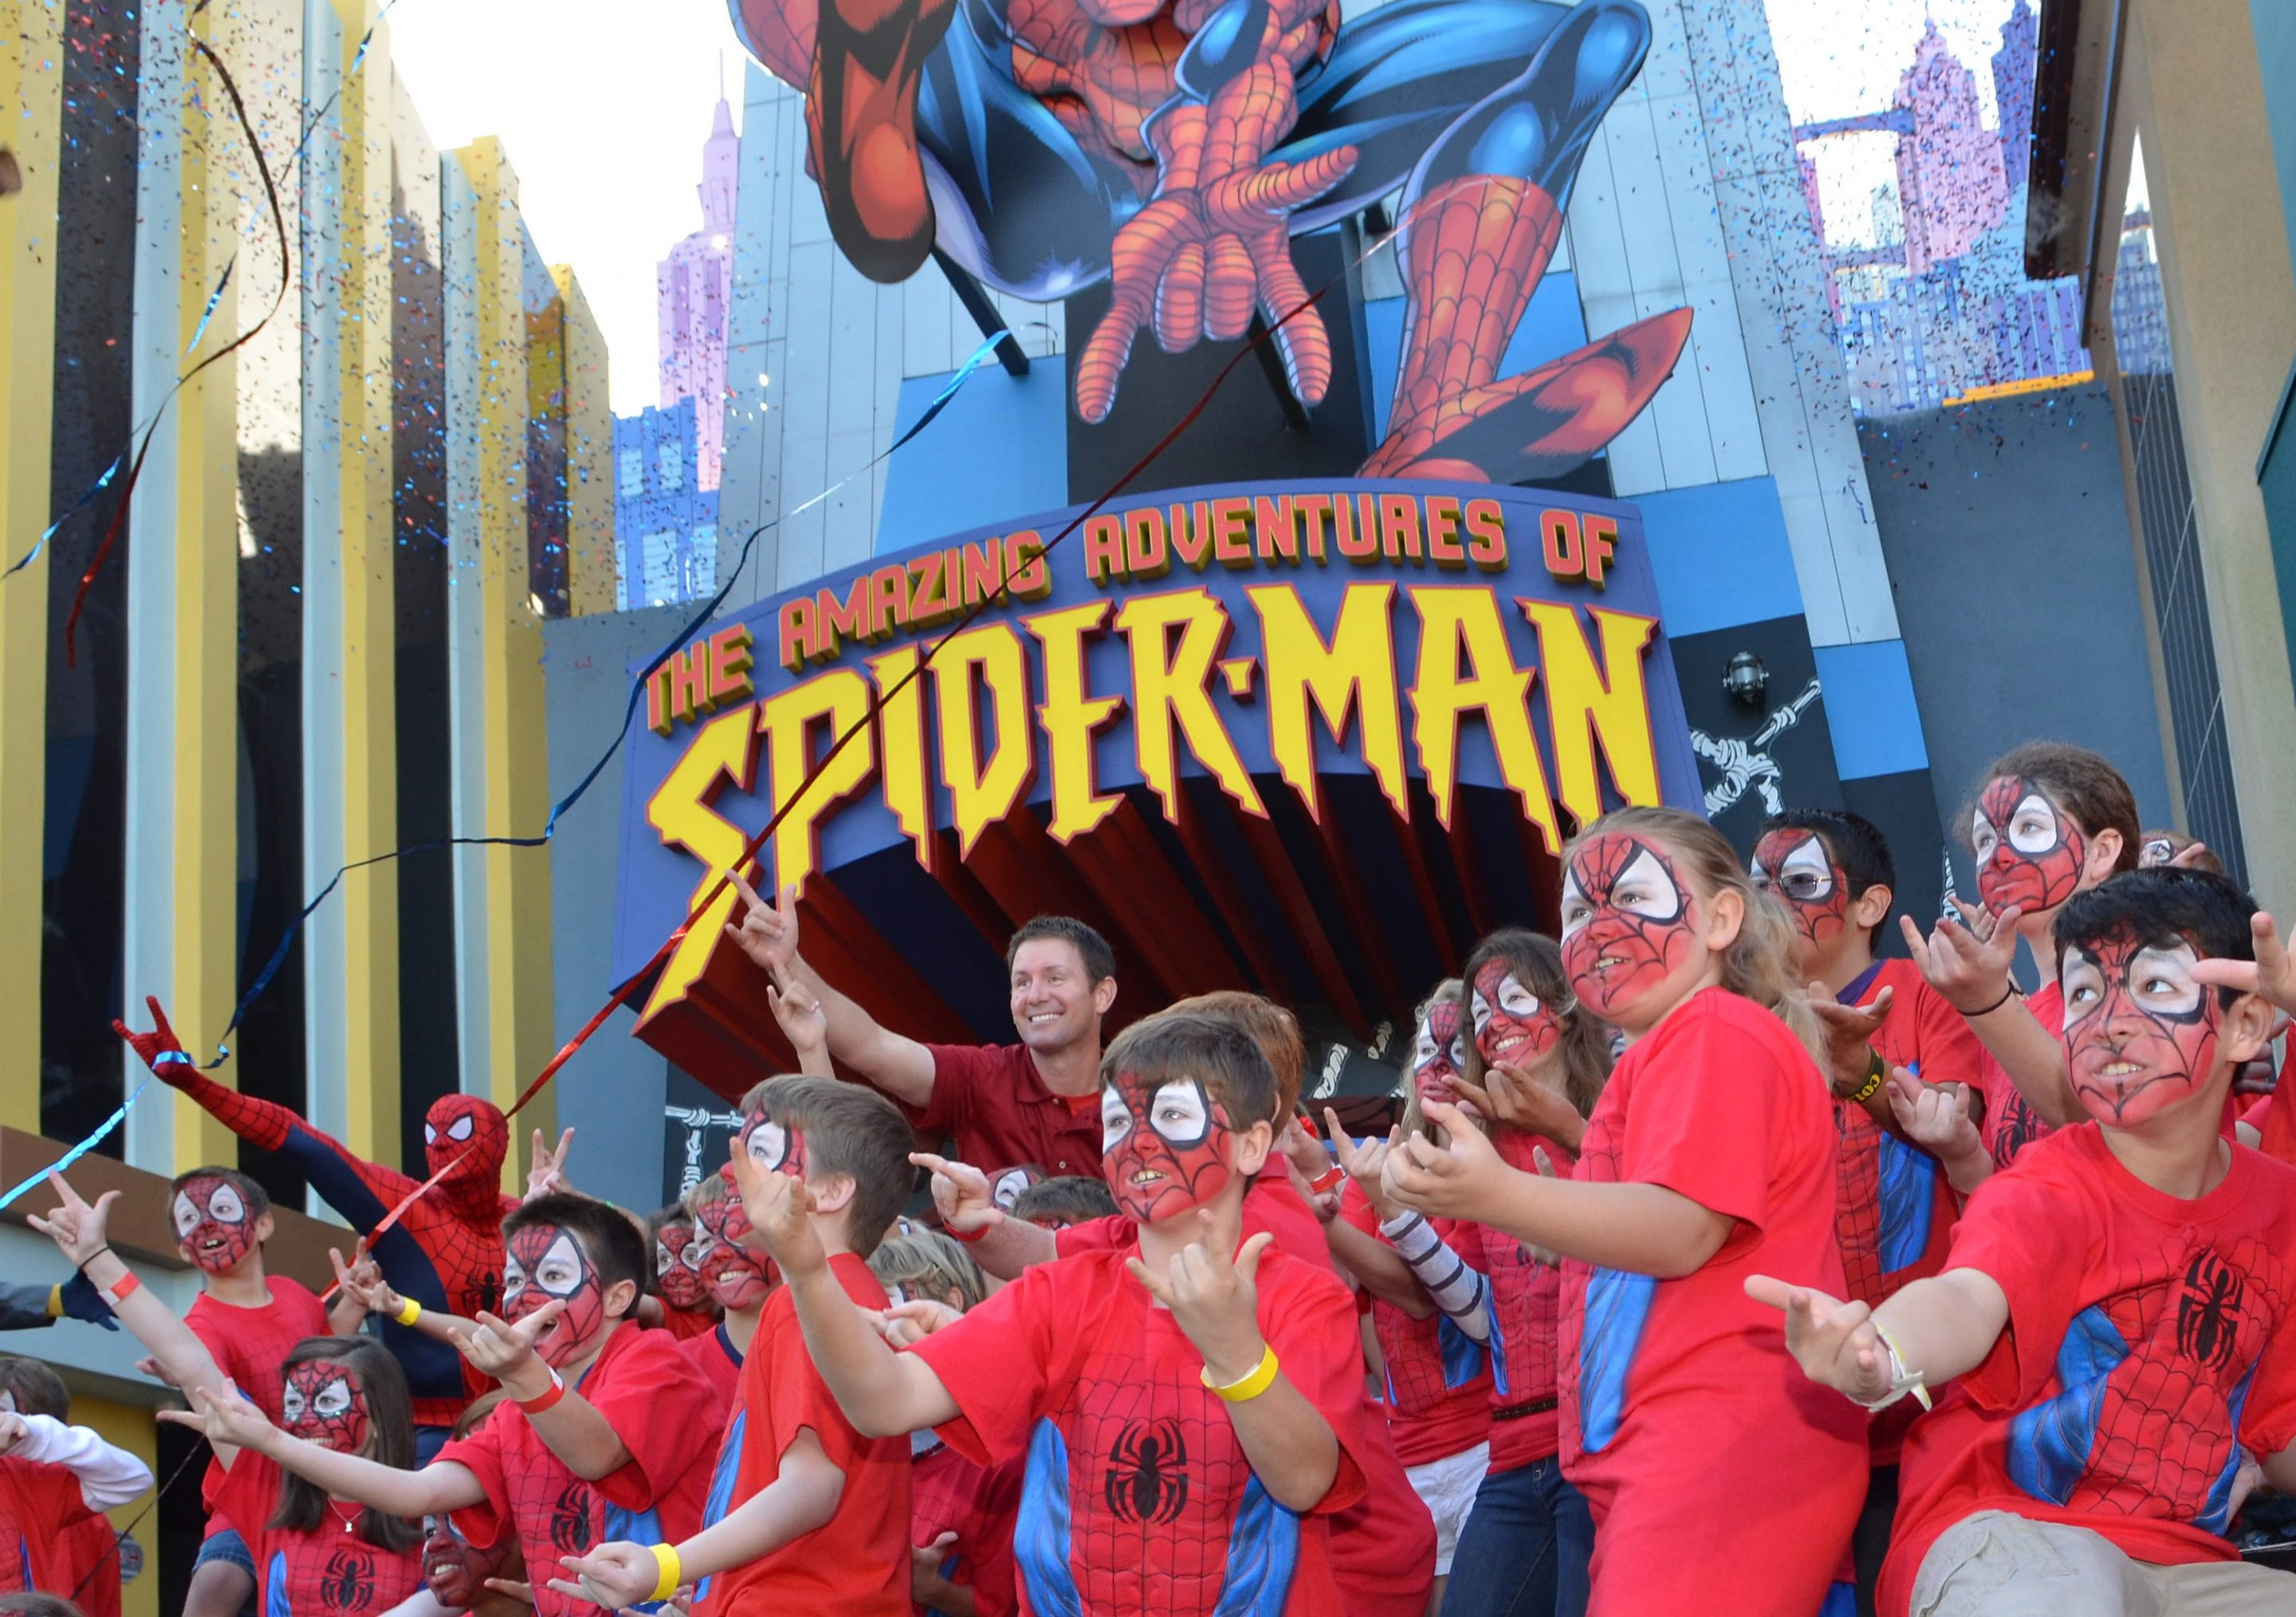 Spidey Sense in Overdrive! Amazing Enhancements to Universal's Spiderman Ride